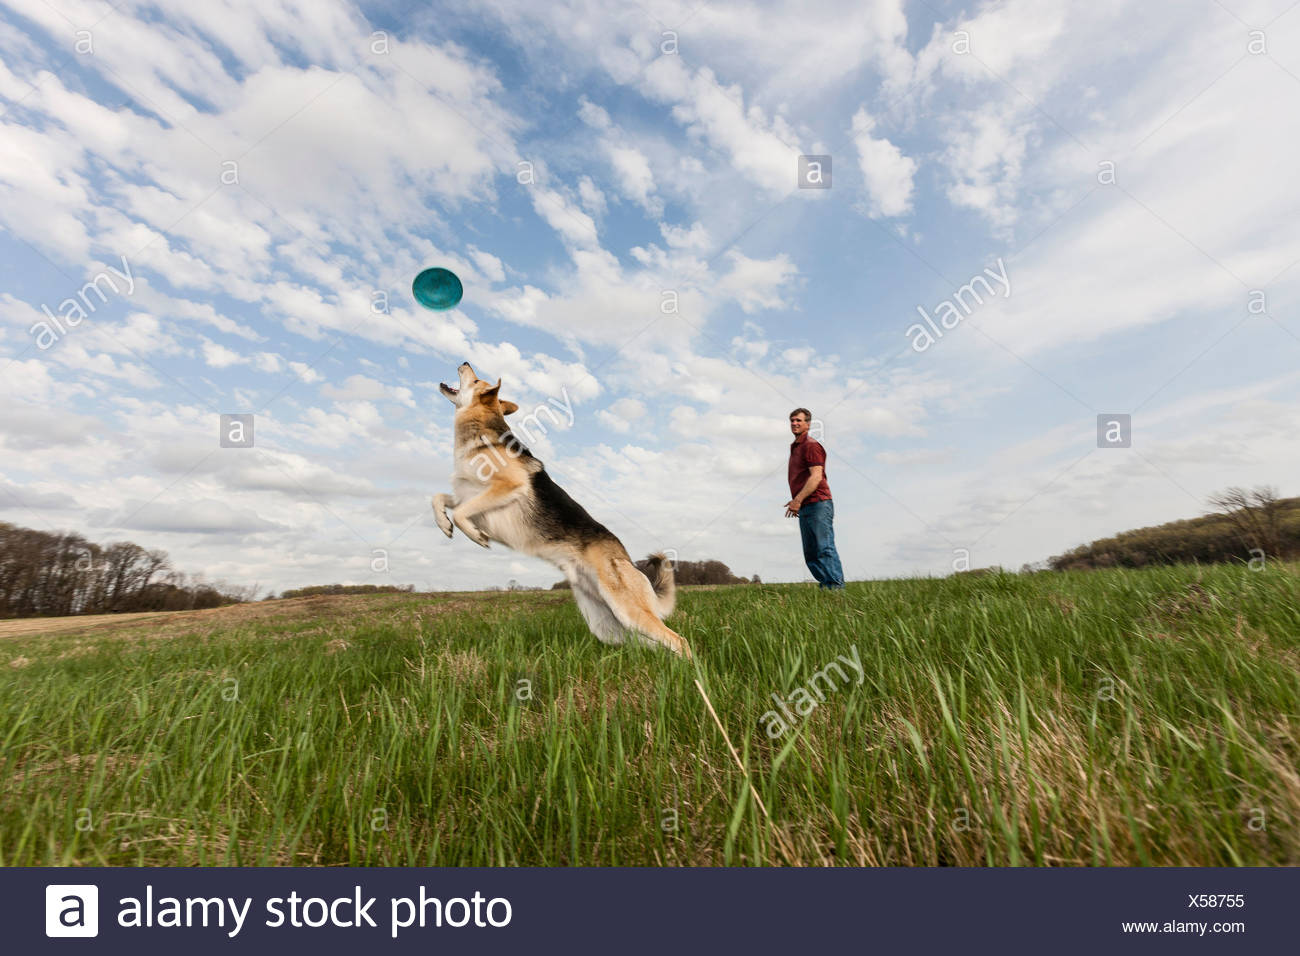 Alsatian dog jumping to catch frisbee - Stock Image